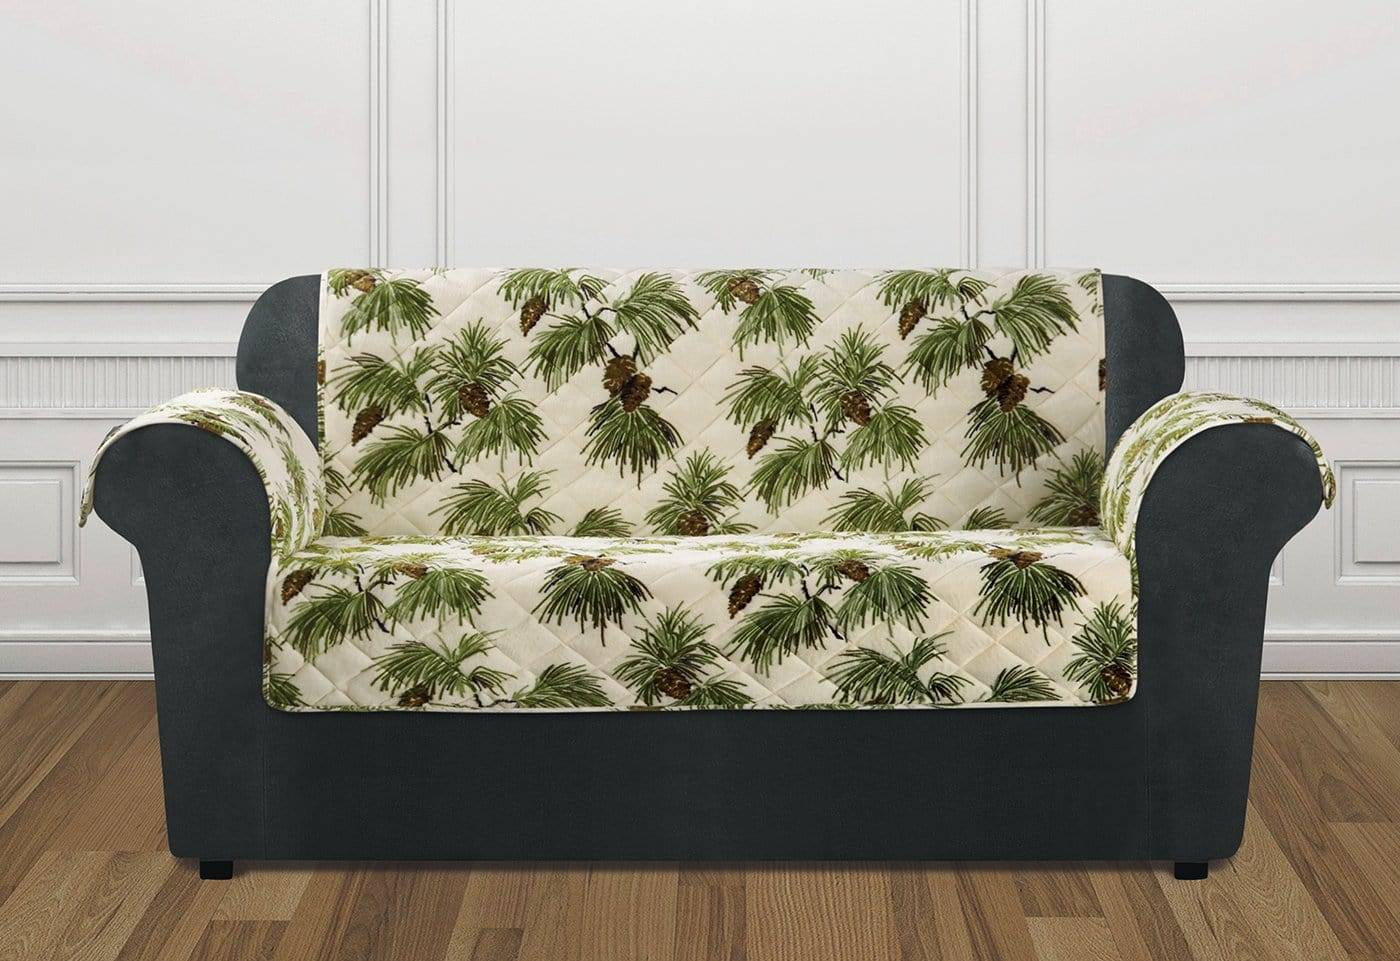 Holiday Loveseat Furniture Cover 100% Polyester Pet Furniture Cover Machine Washable - Loveseat / Pinecone Ivory